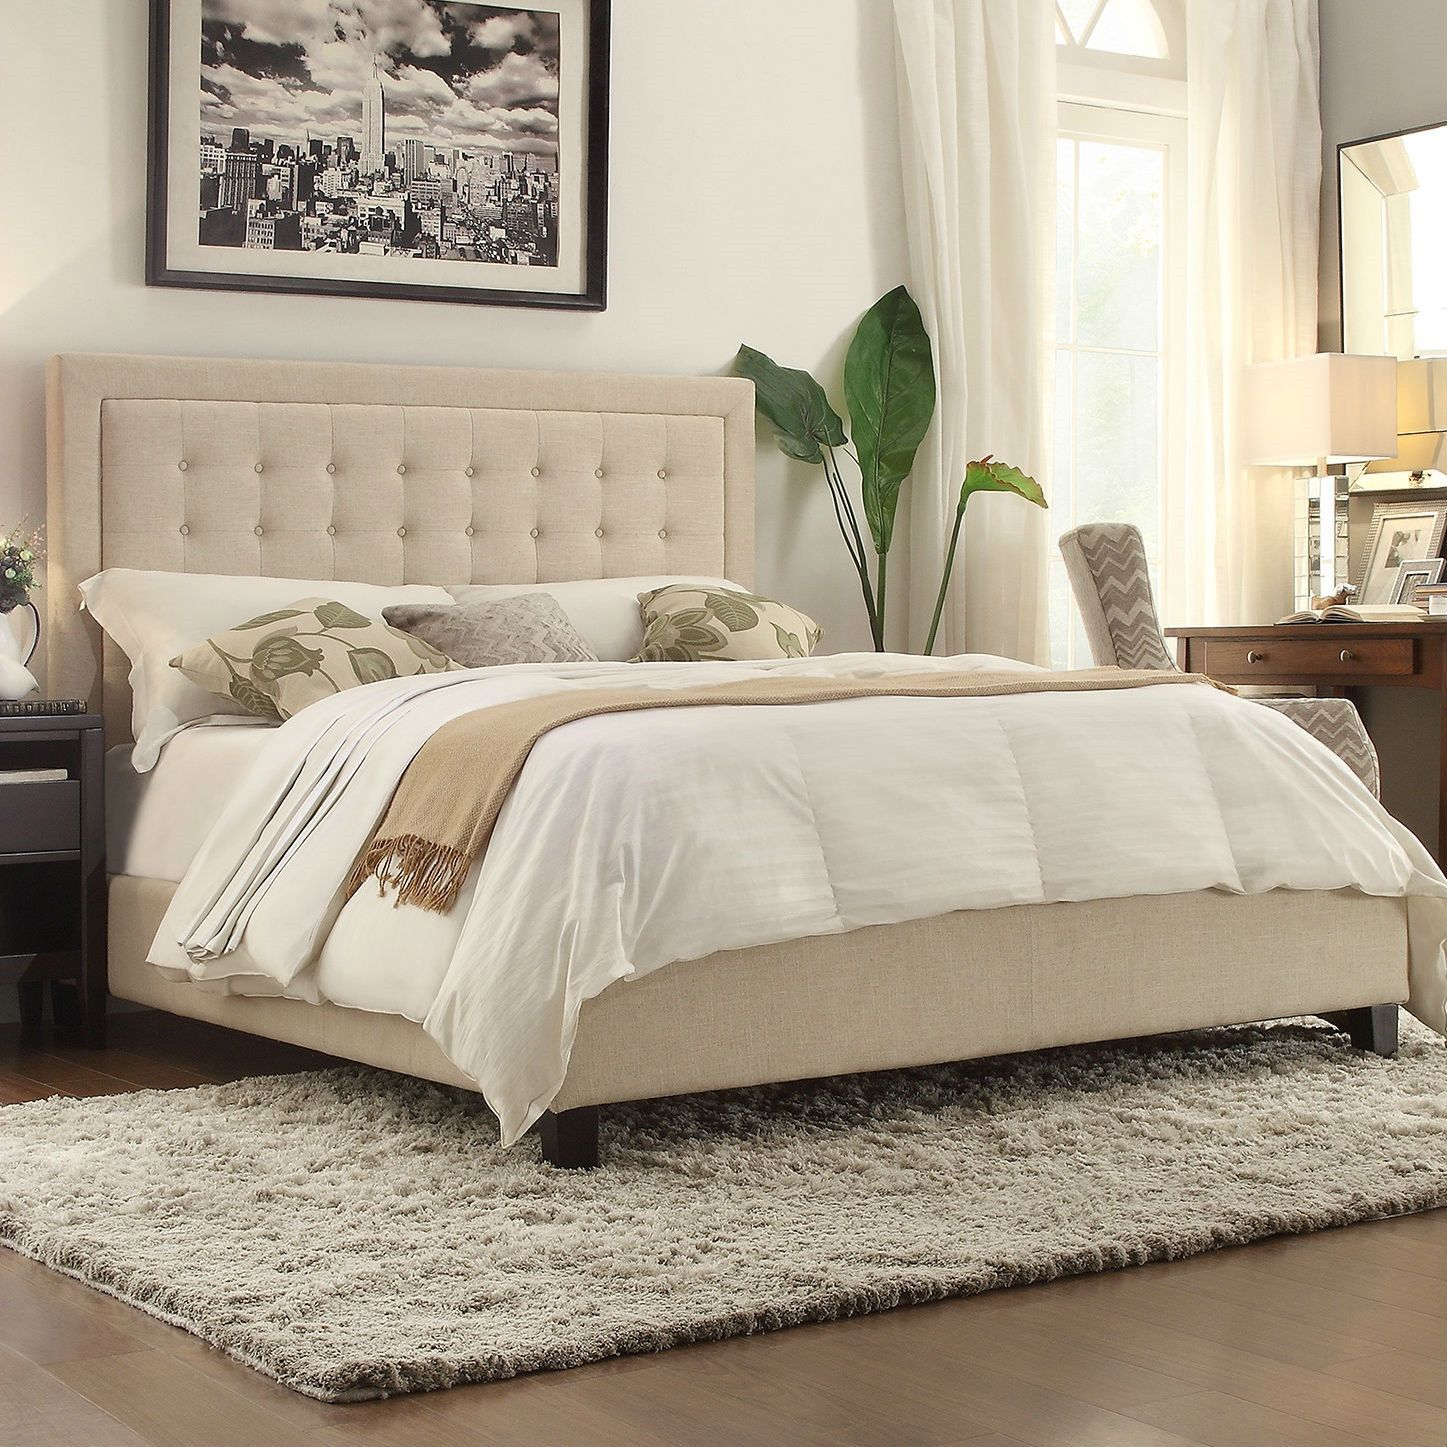 King size Beige Upholstered Bed with Button Tufted ...